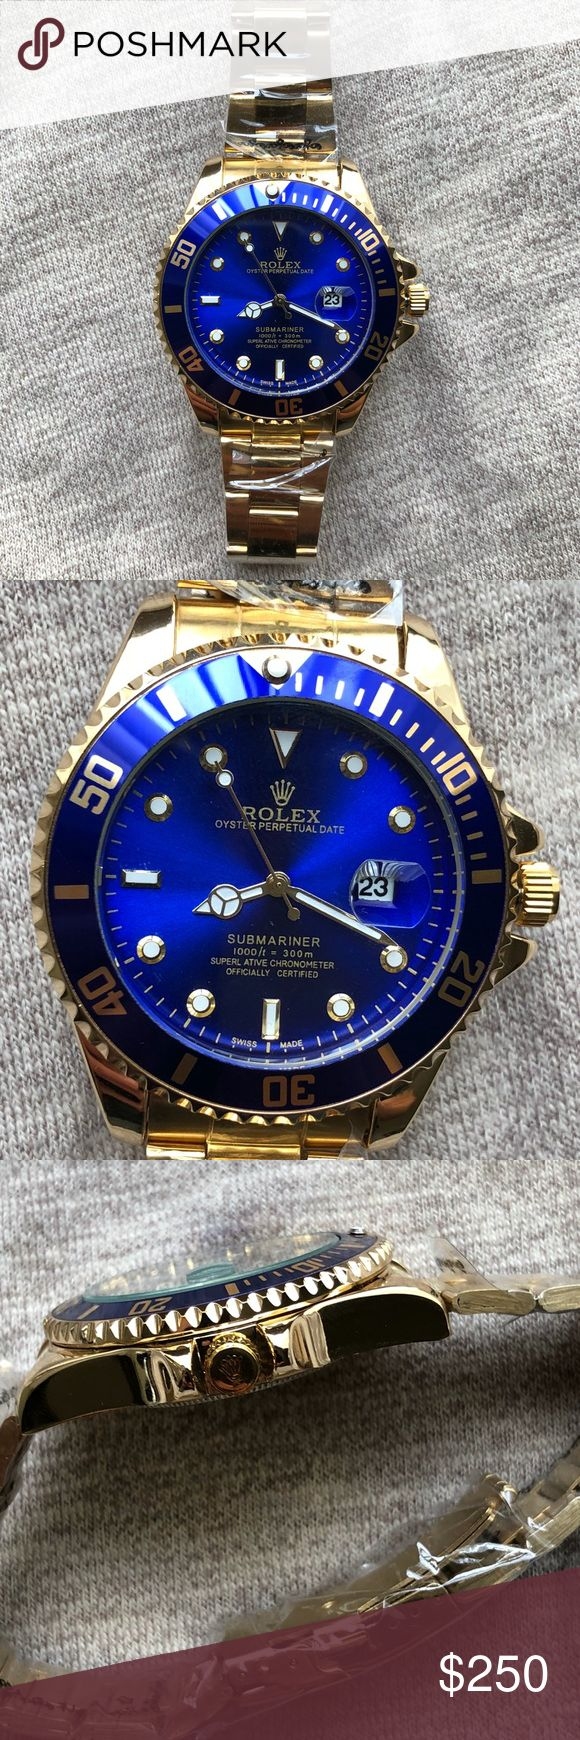 New Rolex Submariner Watch Brand New Rolex Submariner Men's Watch   This is a 1:1 SCALE PERFECT.   R. E. P.  L. I. C A Exactly like the original   Quartz moment   Same day shipping Rolex Accessories Watches